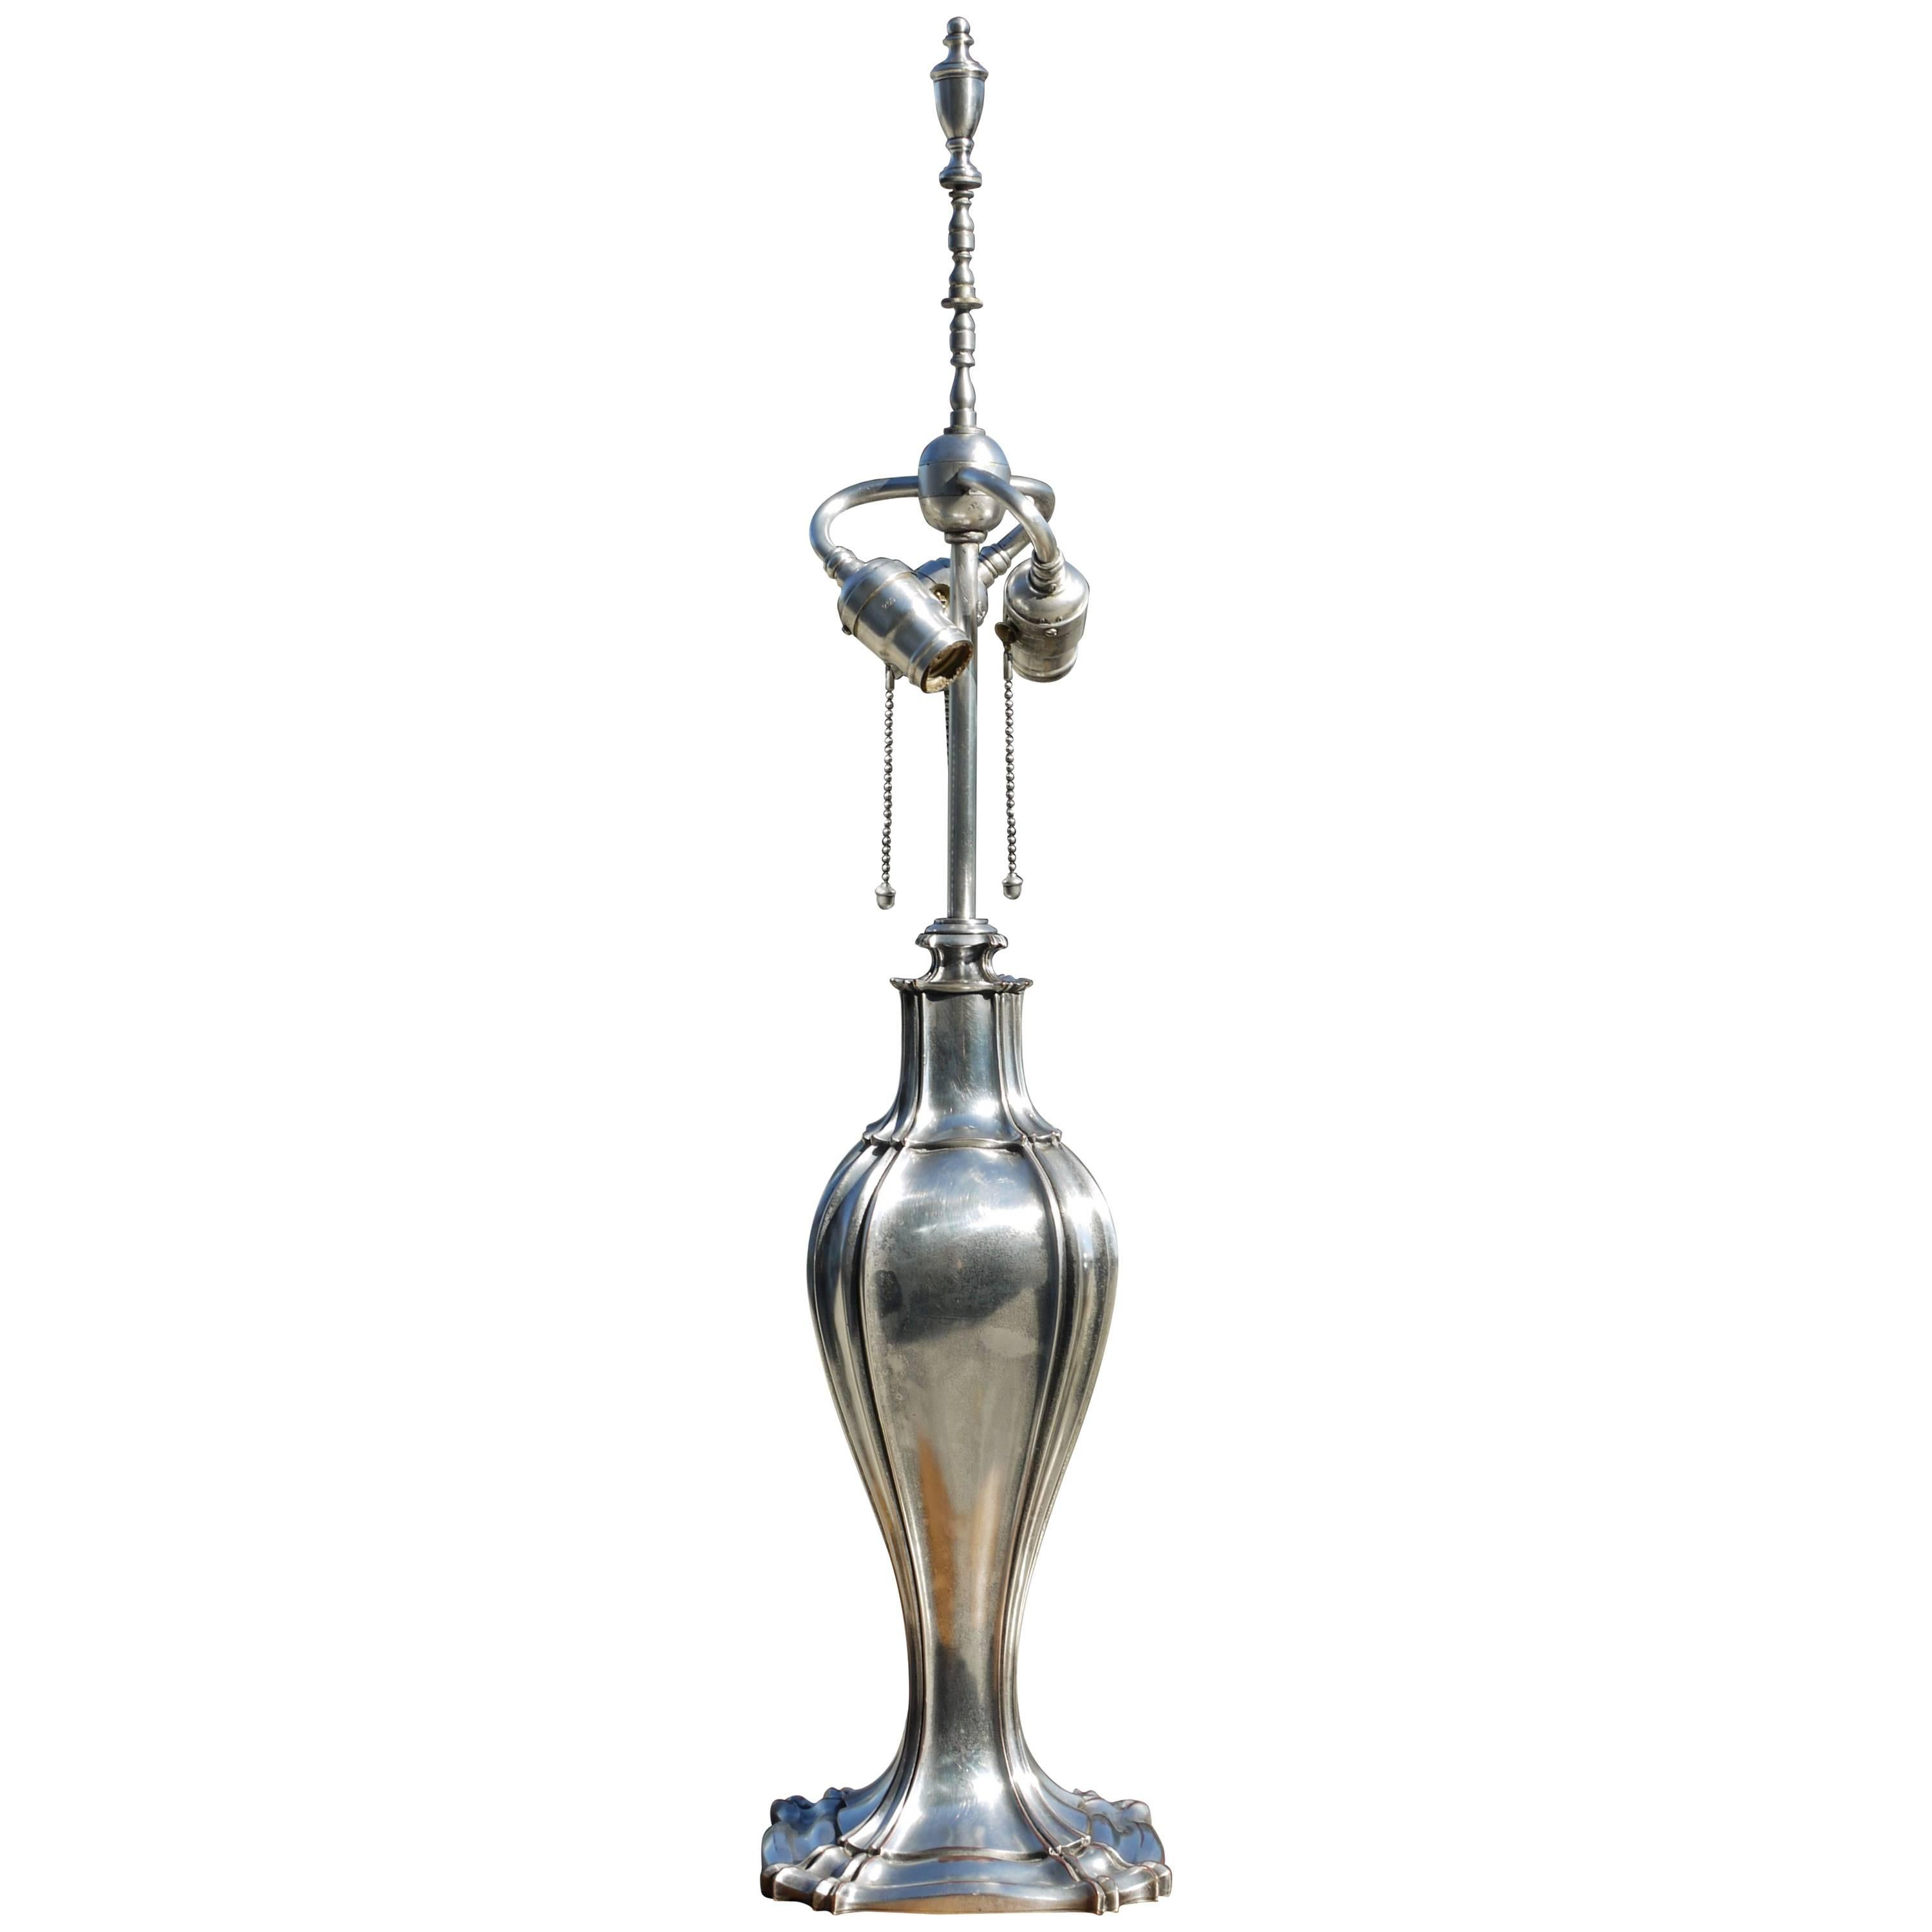 Silvered Bronze Lamp Attributed to E.F. Caldwell